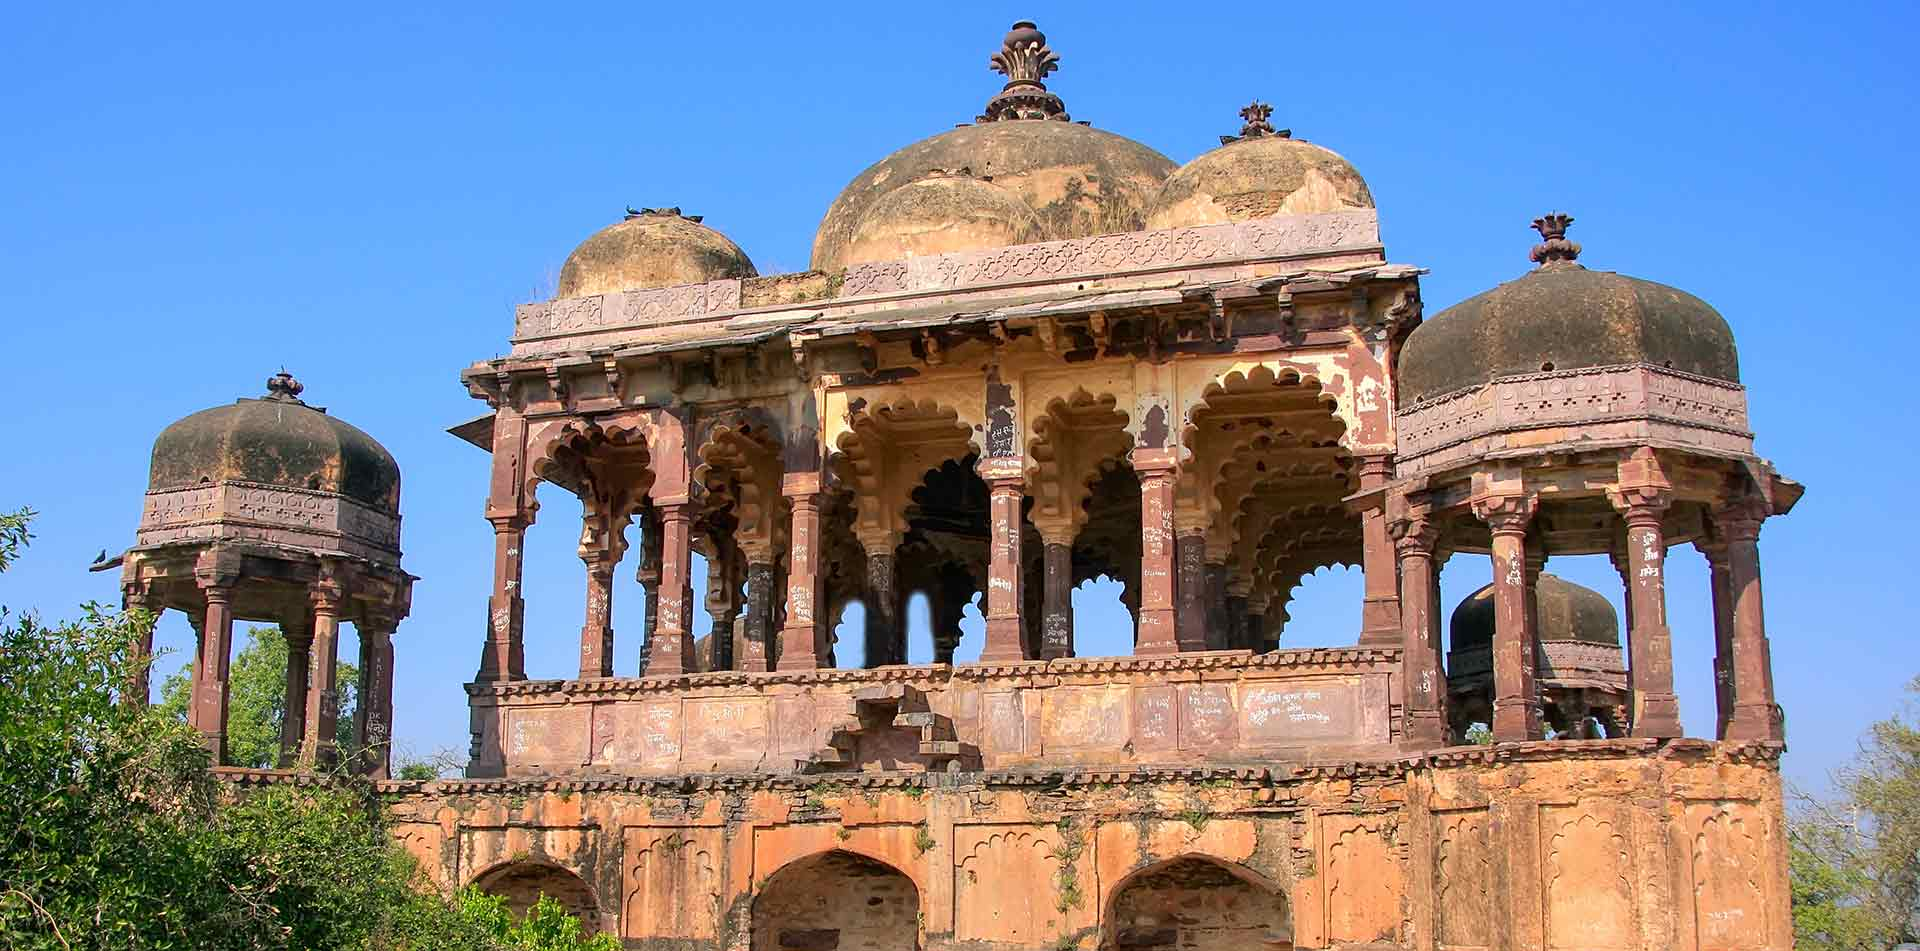 Temple in Rathambore National Park, India